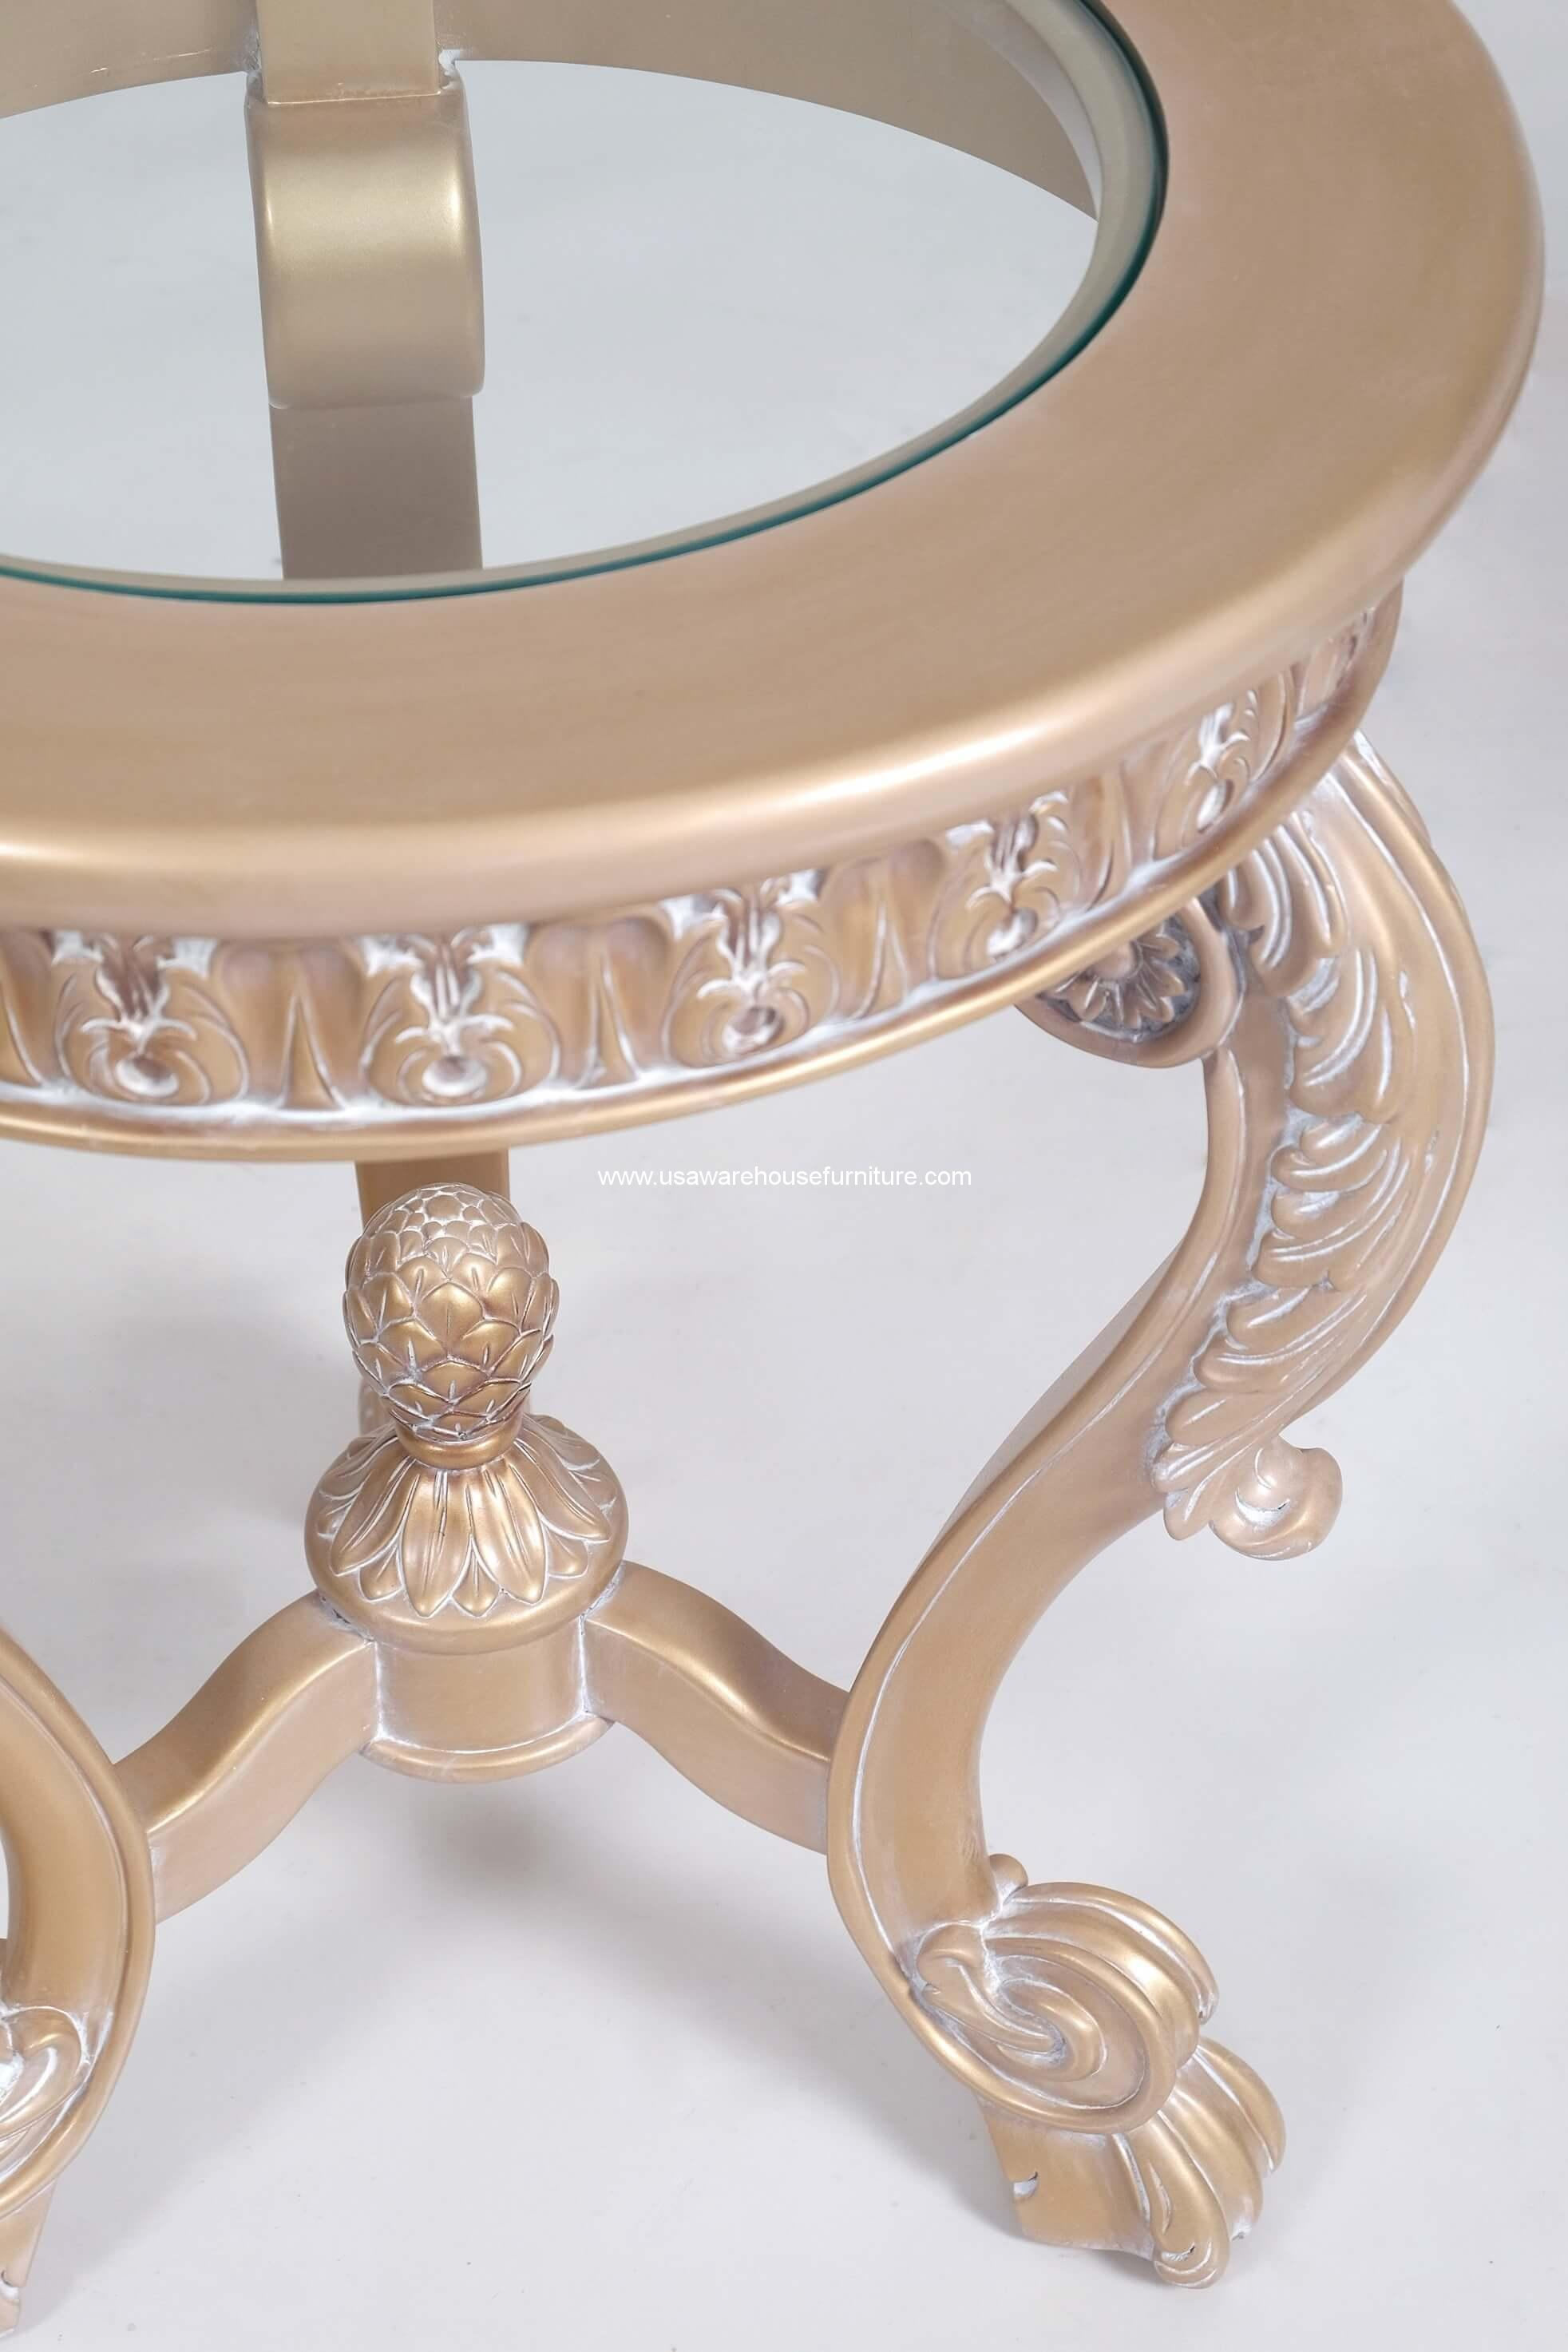 Imperial Palace Round End Table Usa Warehouse Furniture